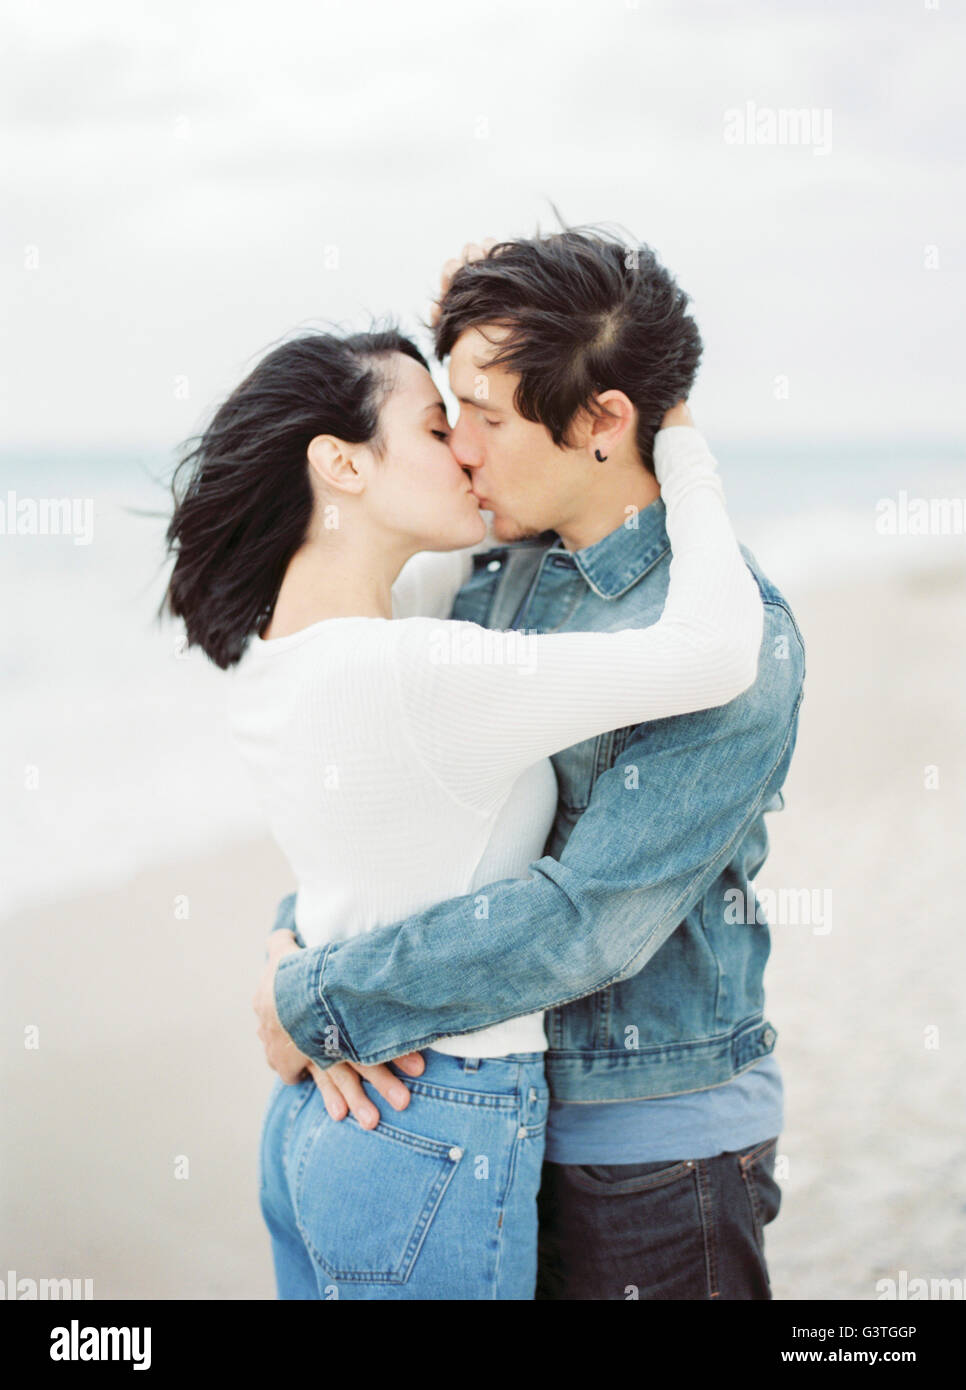 Spain, Valencia, Couple embracing and kissing - Stock Image